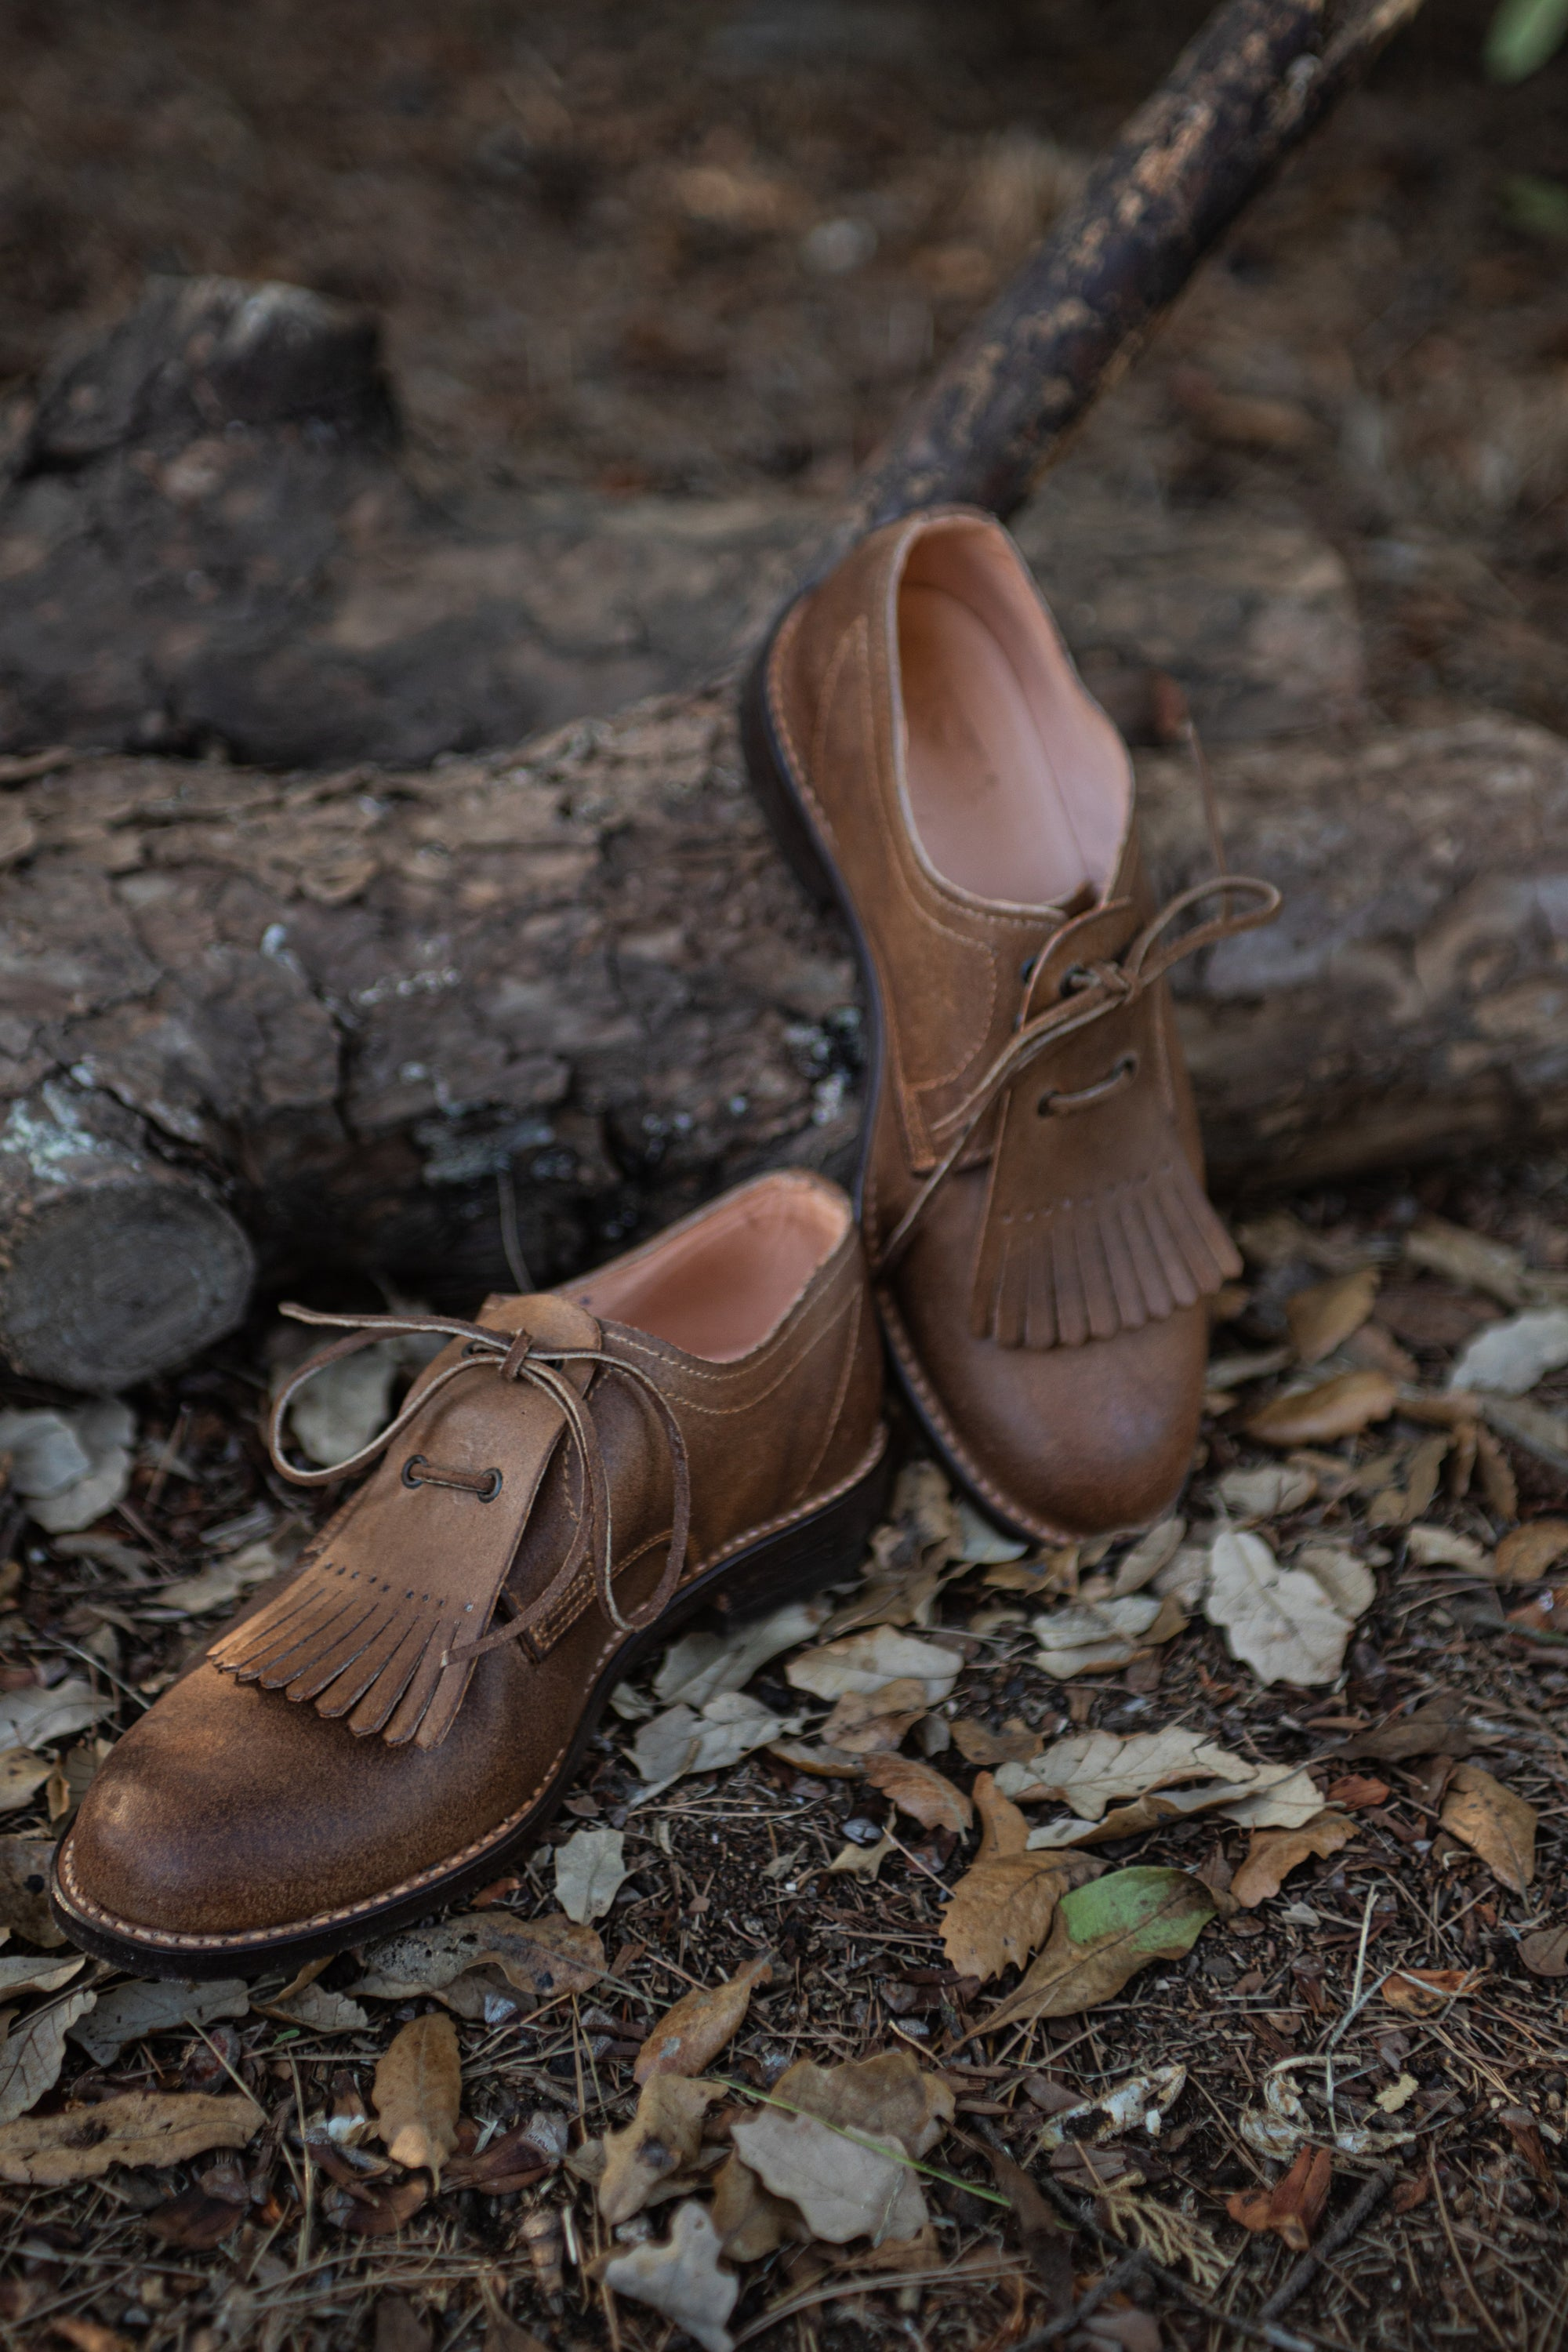 Oxford Shoes | Shoes | Armazém das Malhas | [product_tag] - Fair Bazaar Ethical Living